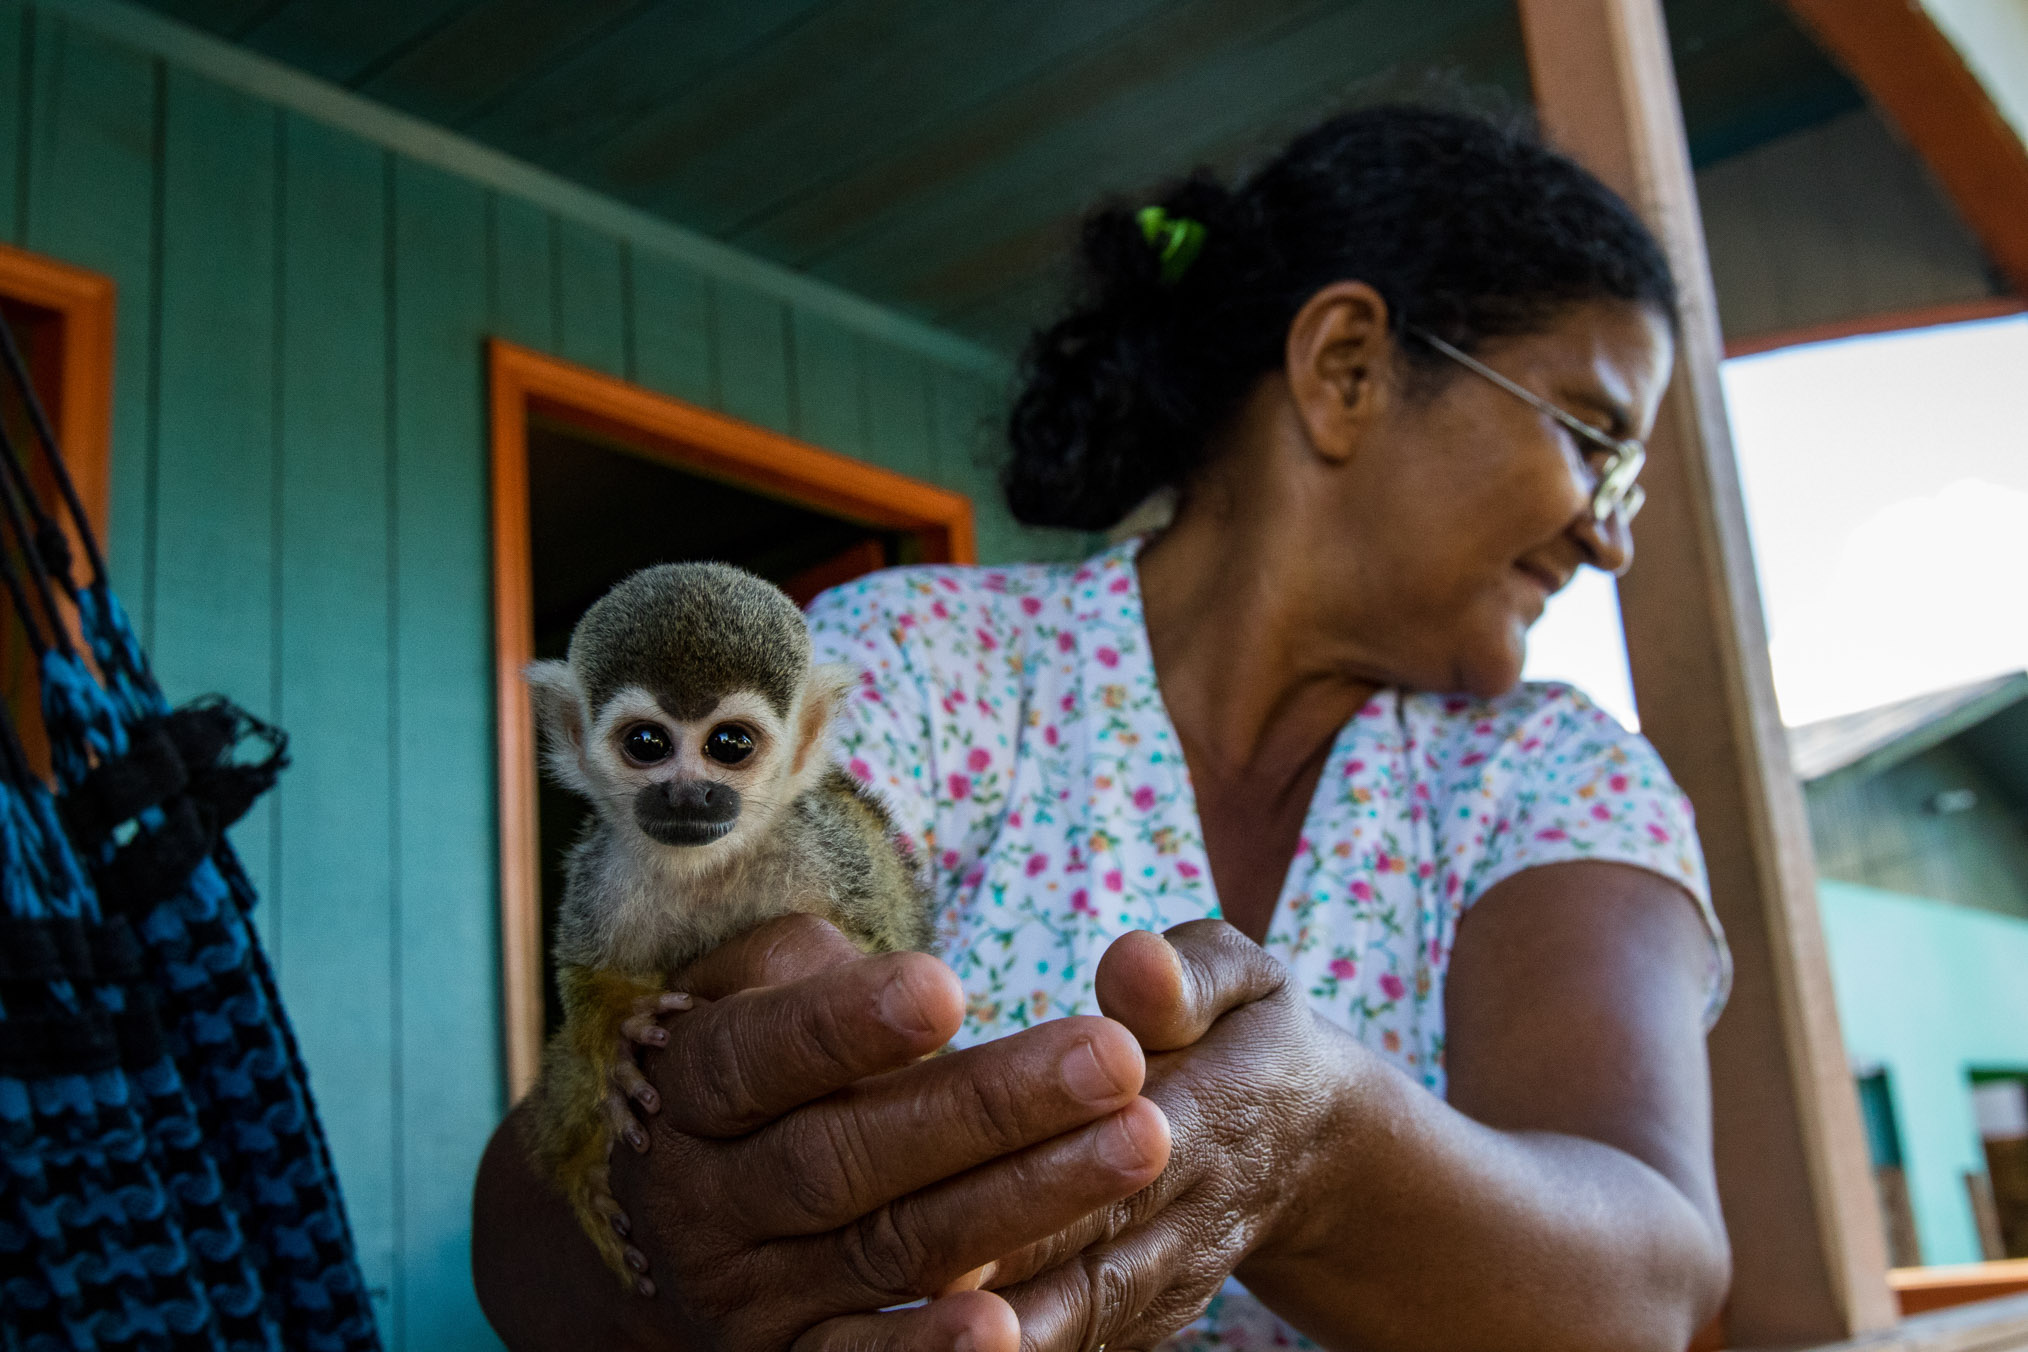 A community member in Eirunepé shows scientists her pet squirrel monkey (Saimiri boliviensis). Baby monkeys are often raised by villagers when their mothers are killed by hunters.